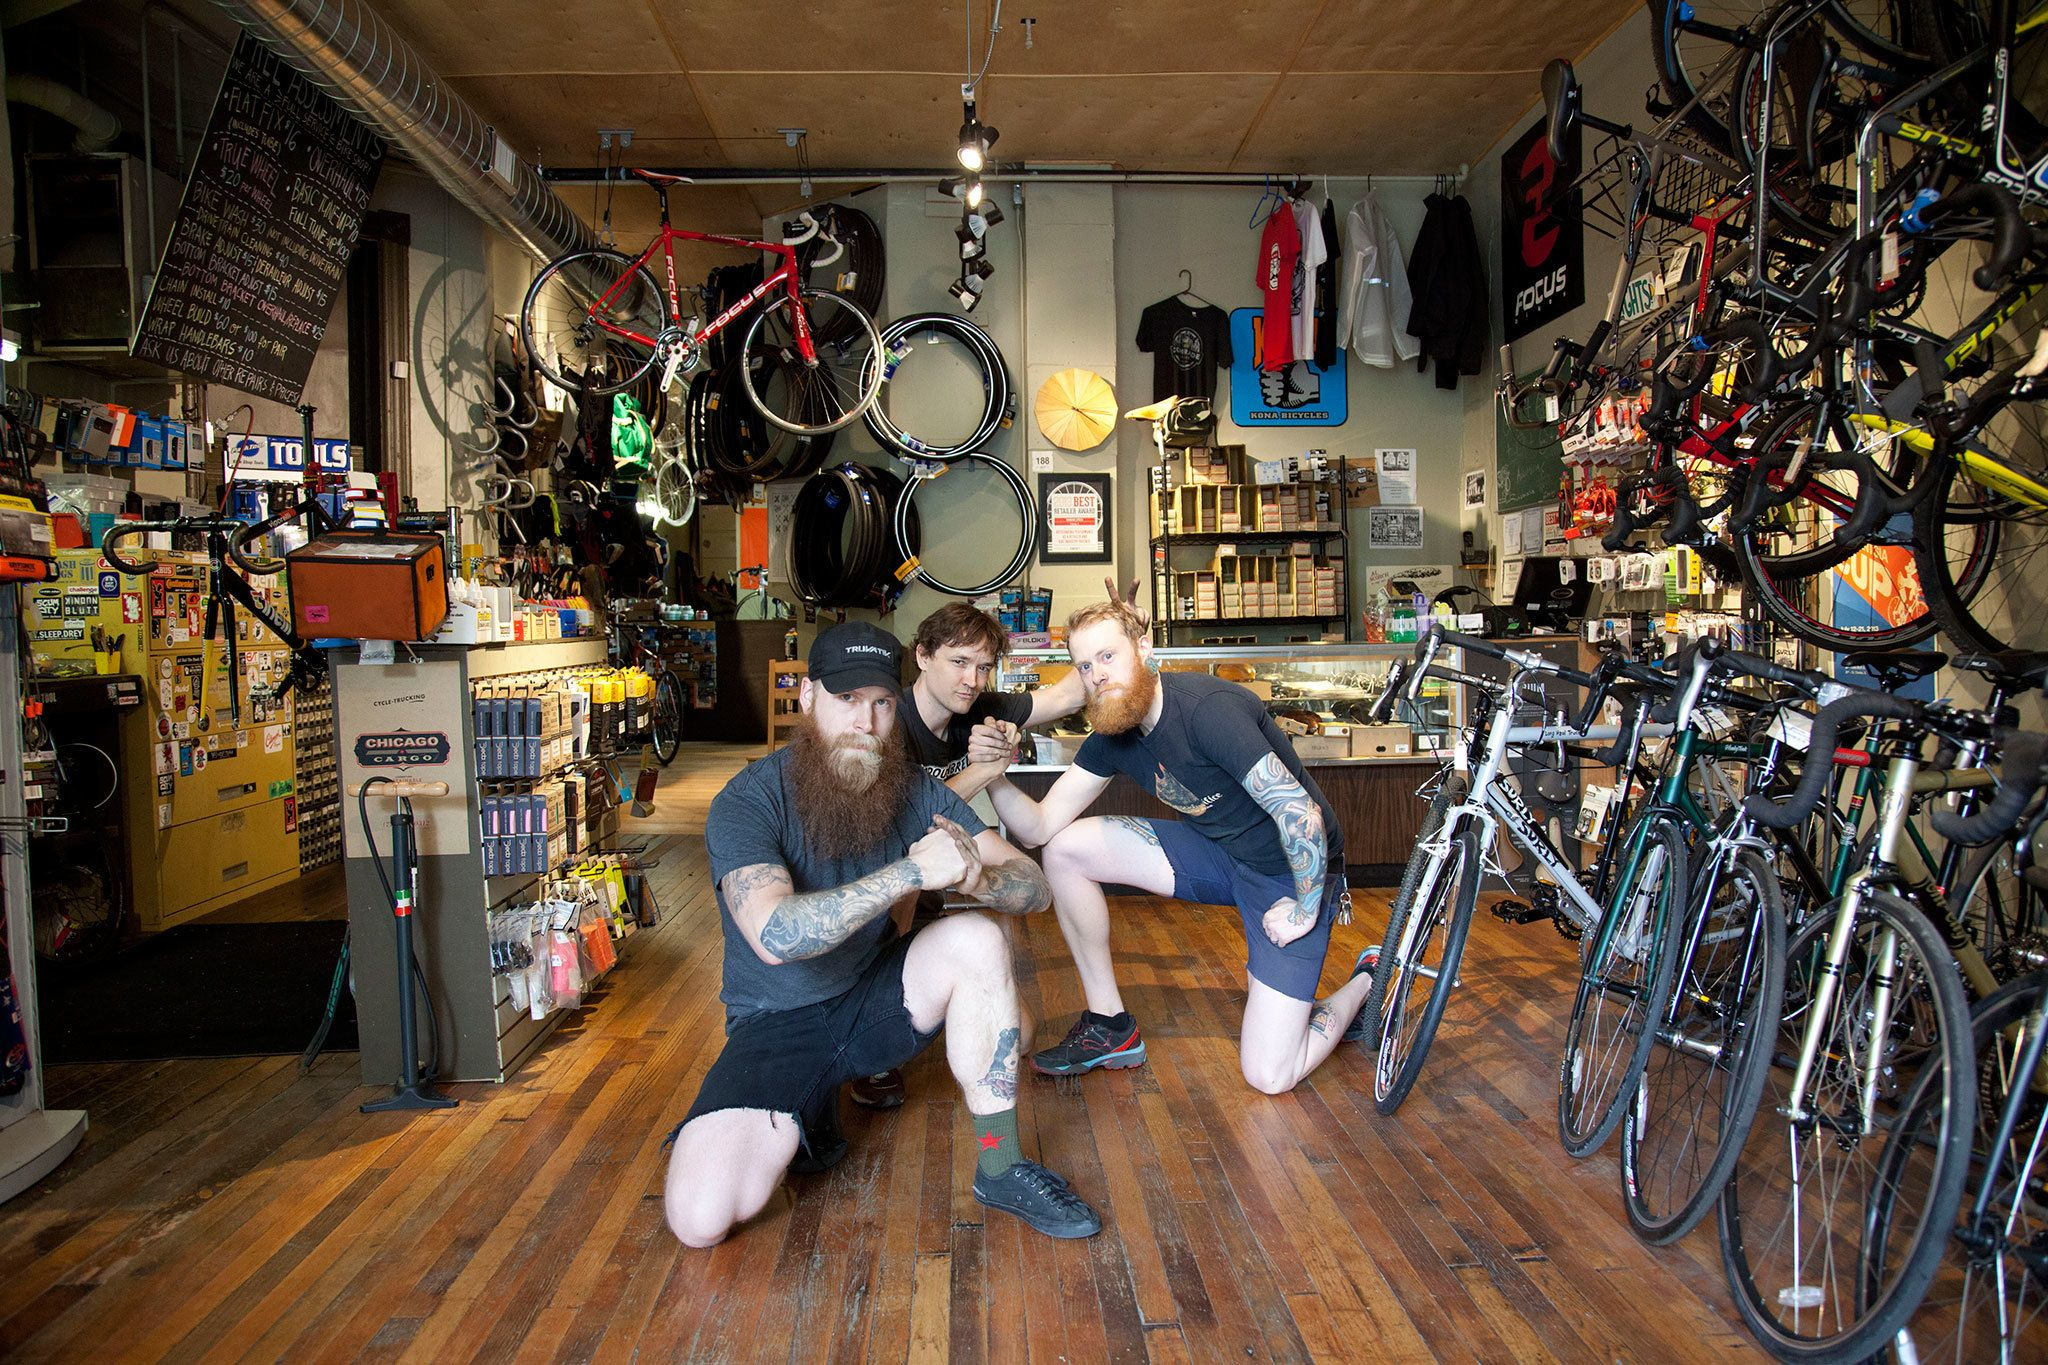 The Best Bike Shops In Chicago With Images Bike Bike Shop